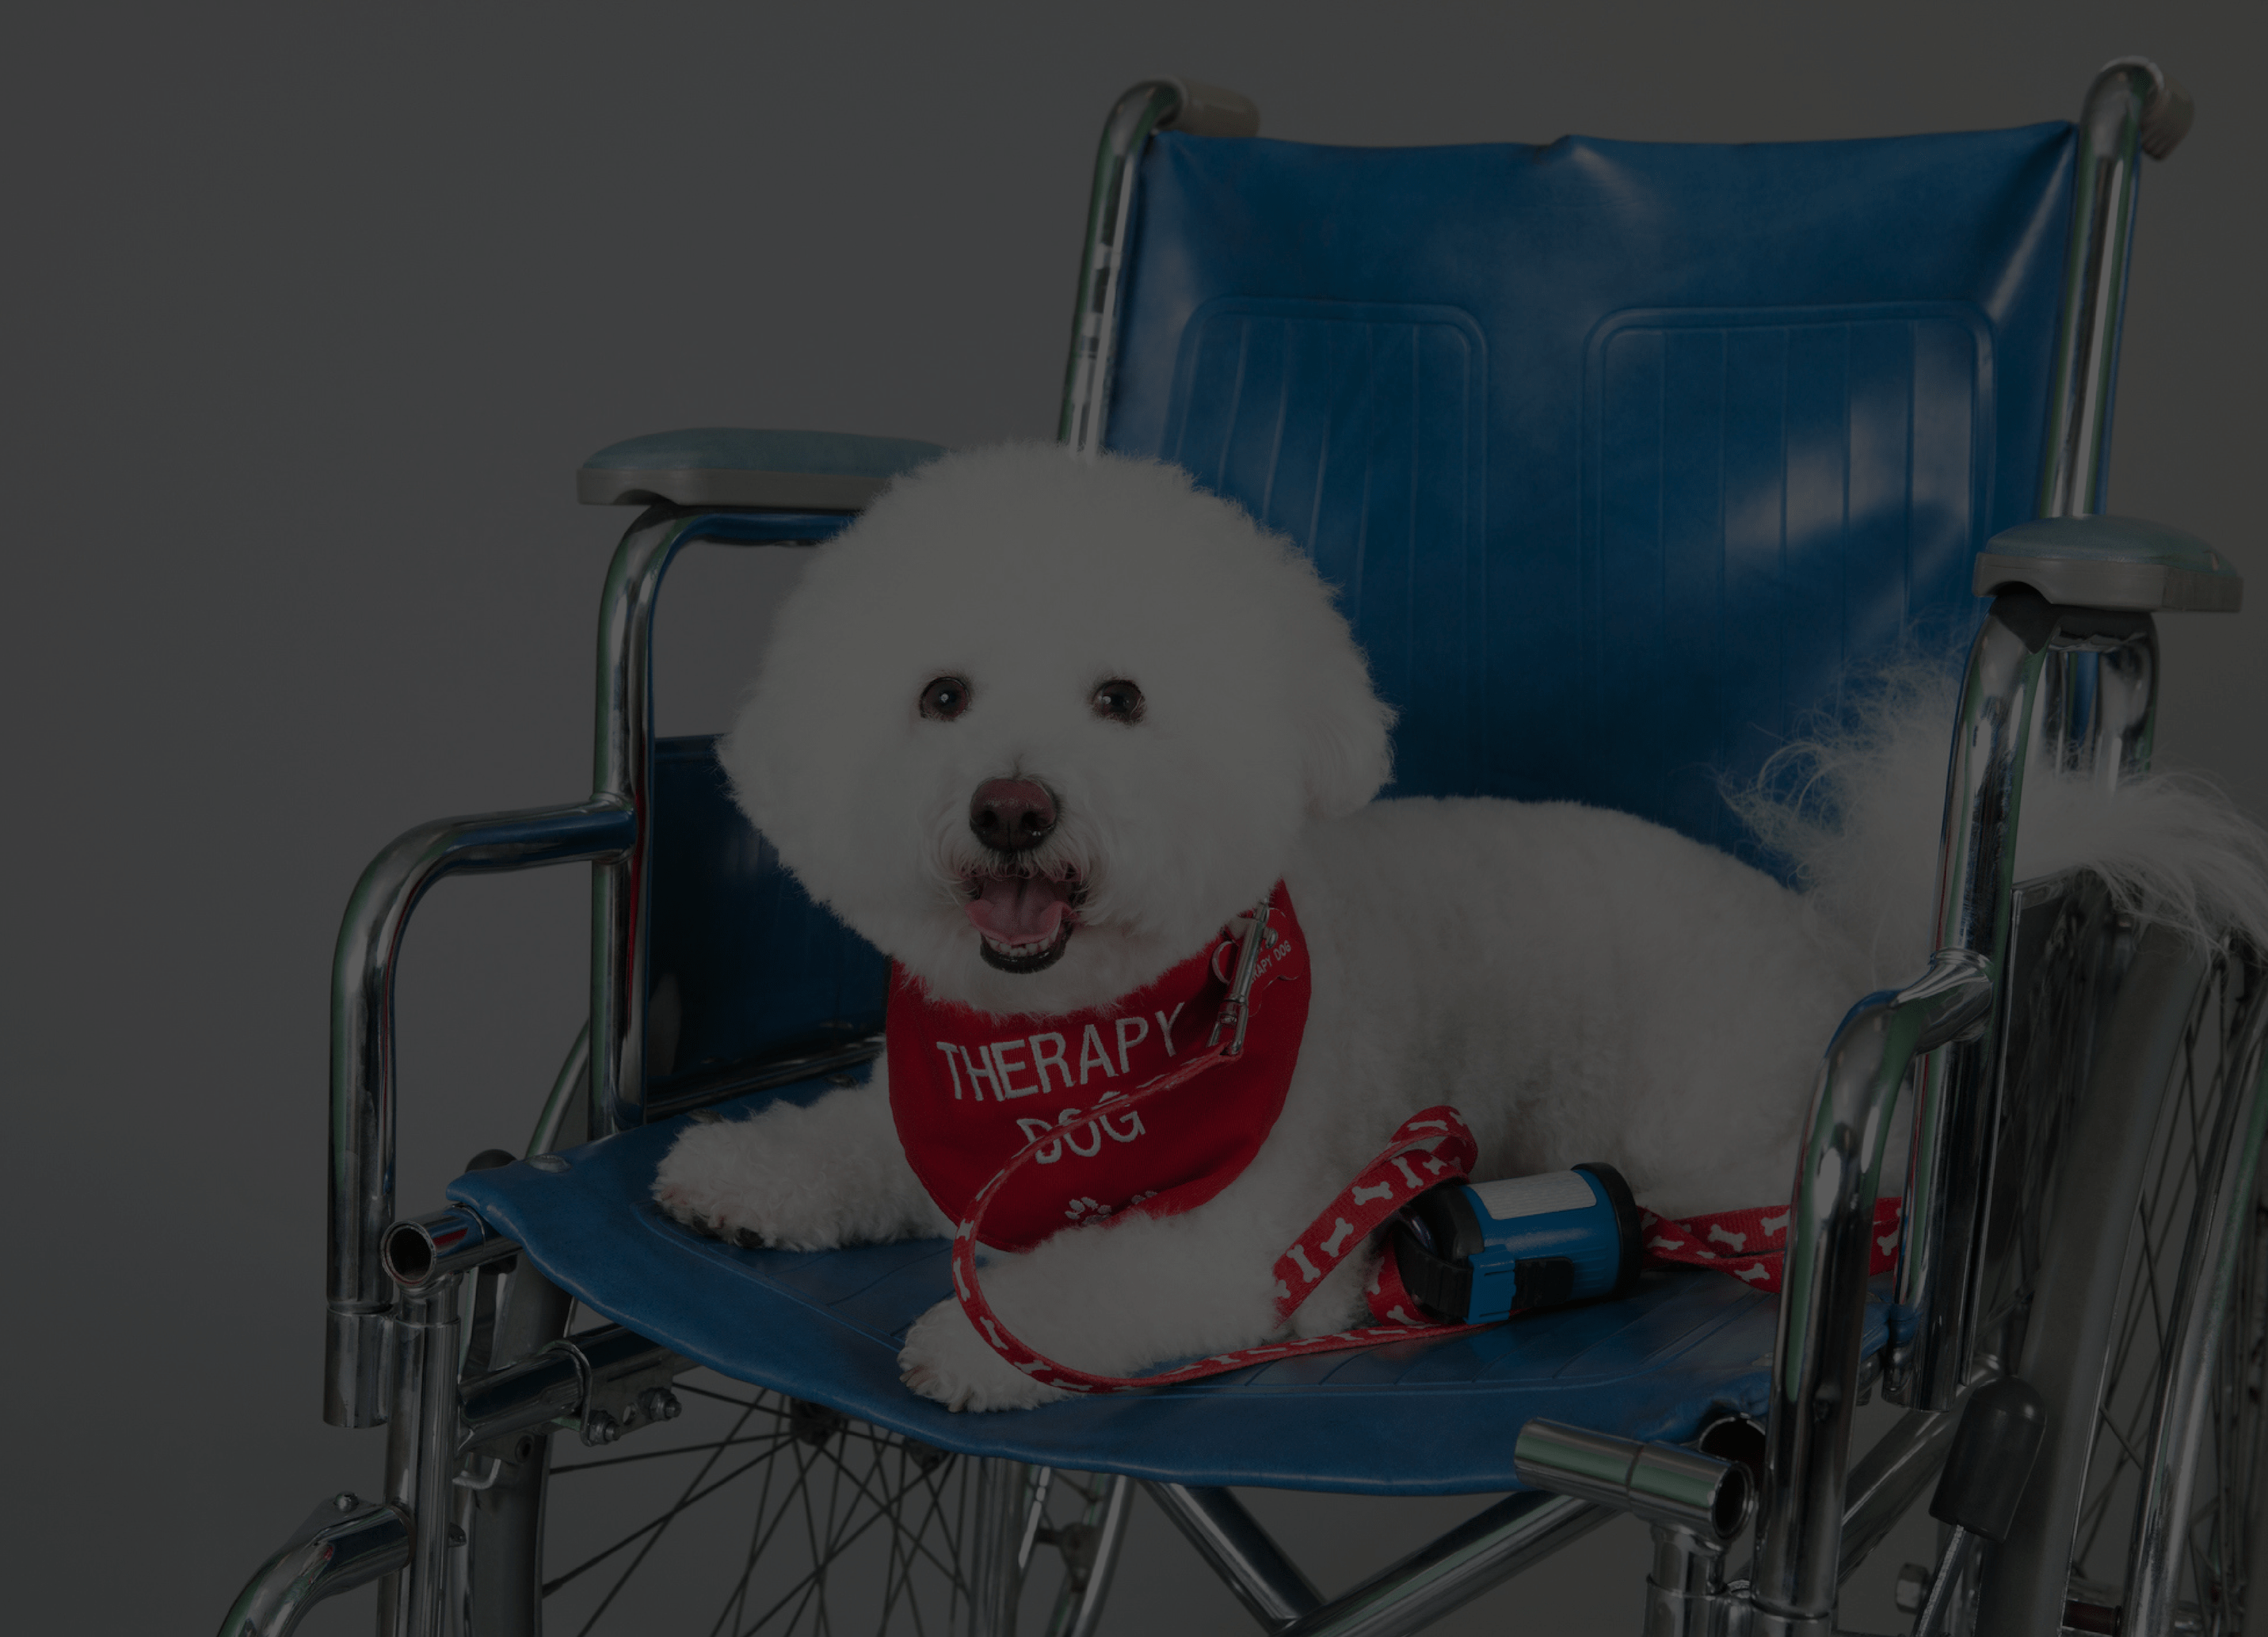 commercial therapy dog insurance